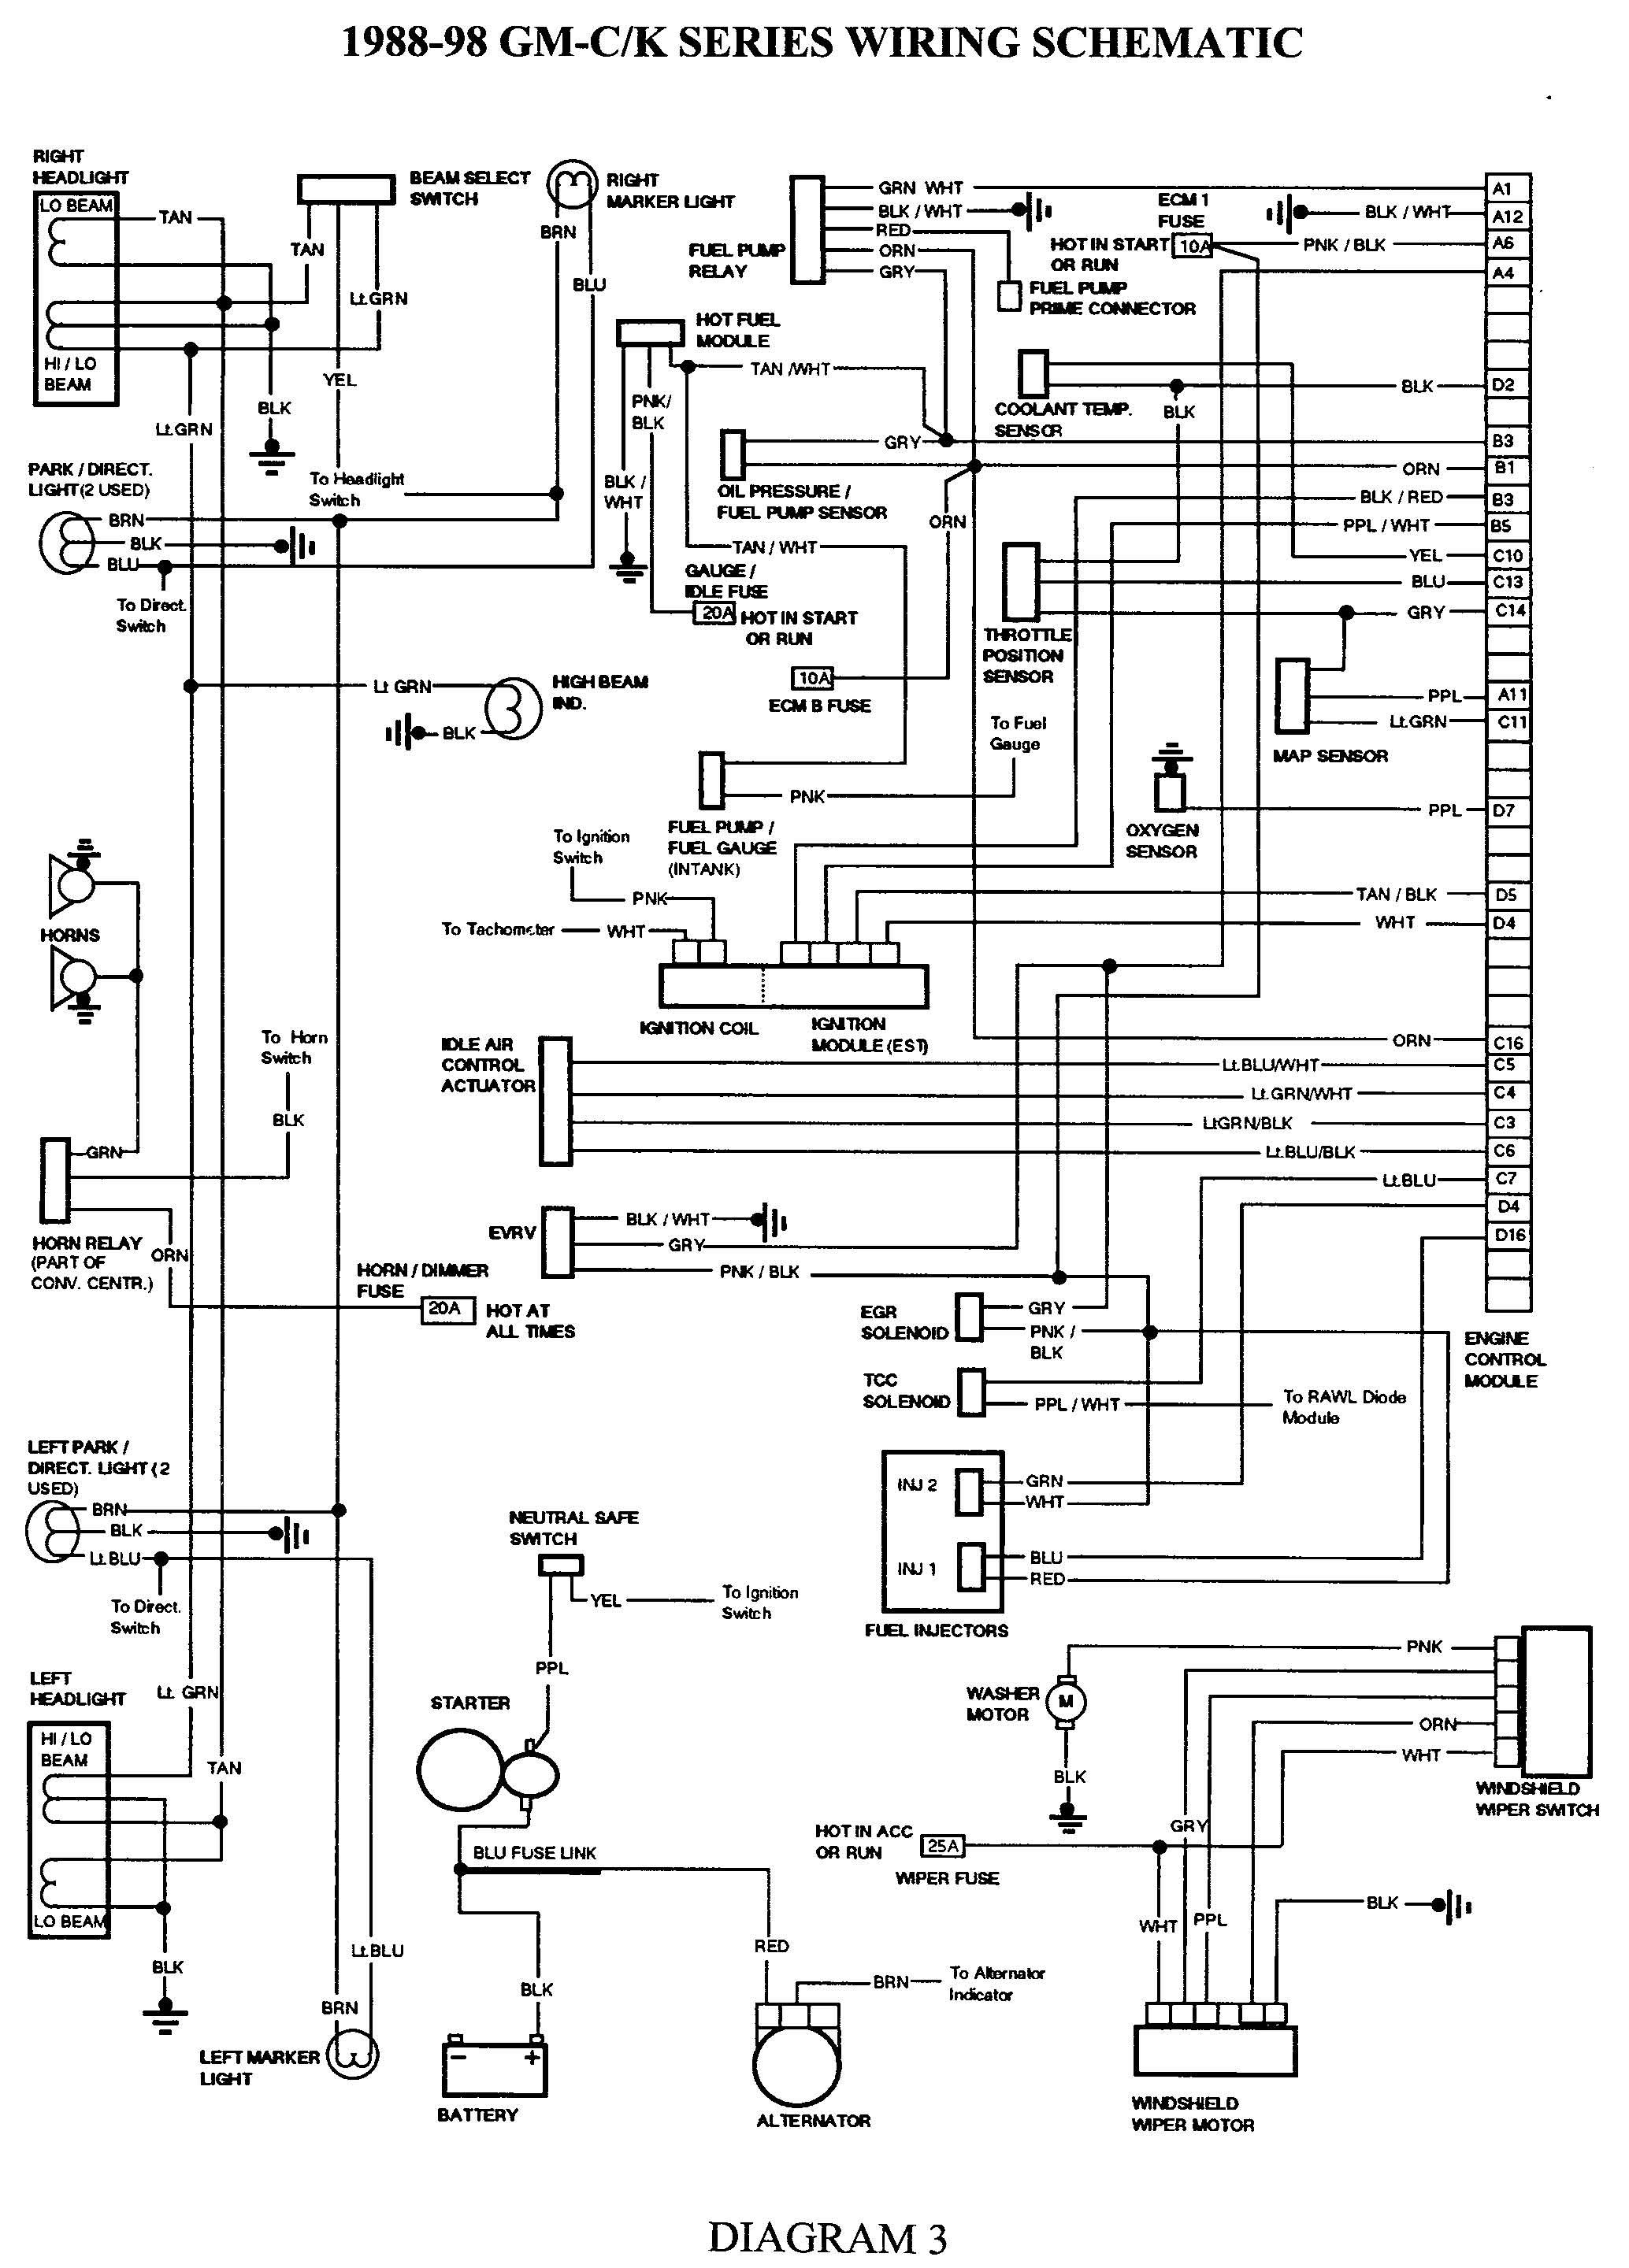 chevrolet wiring harness diagram wiring diagram show 1987 silverado wiring diagram gm [ 2068 x 2880 Pixel ]